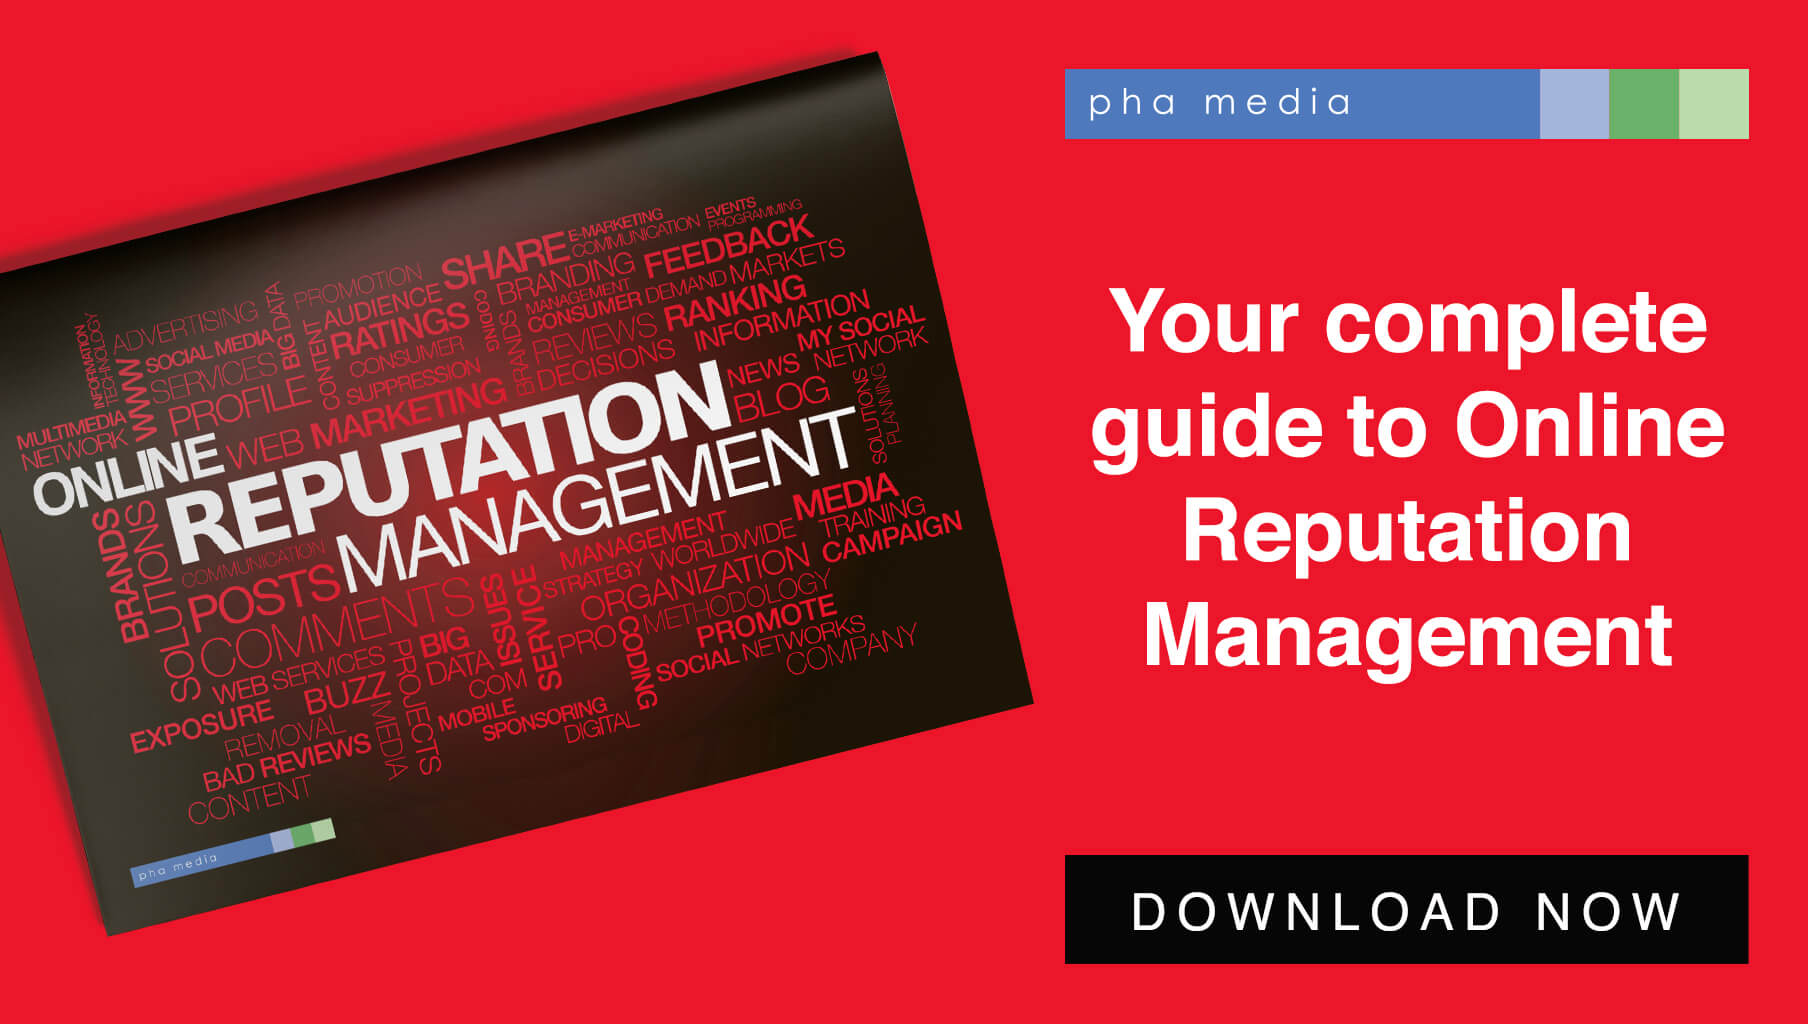 Online reputation management ebook download